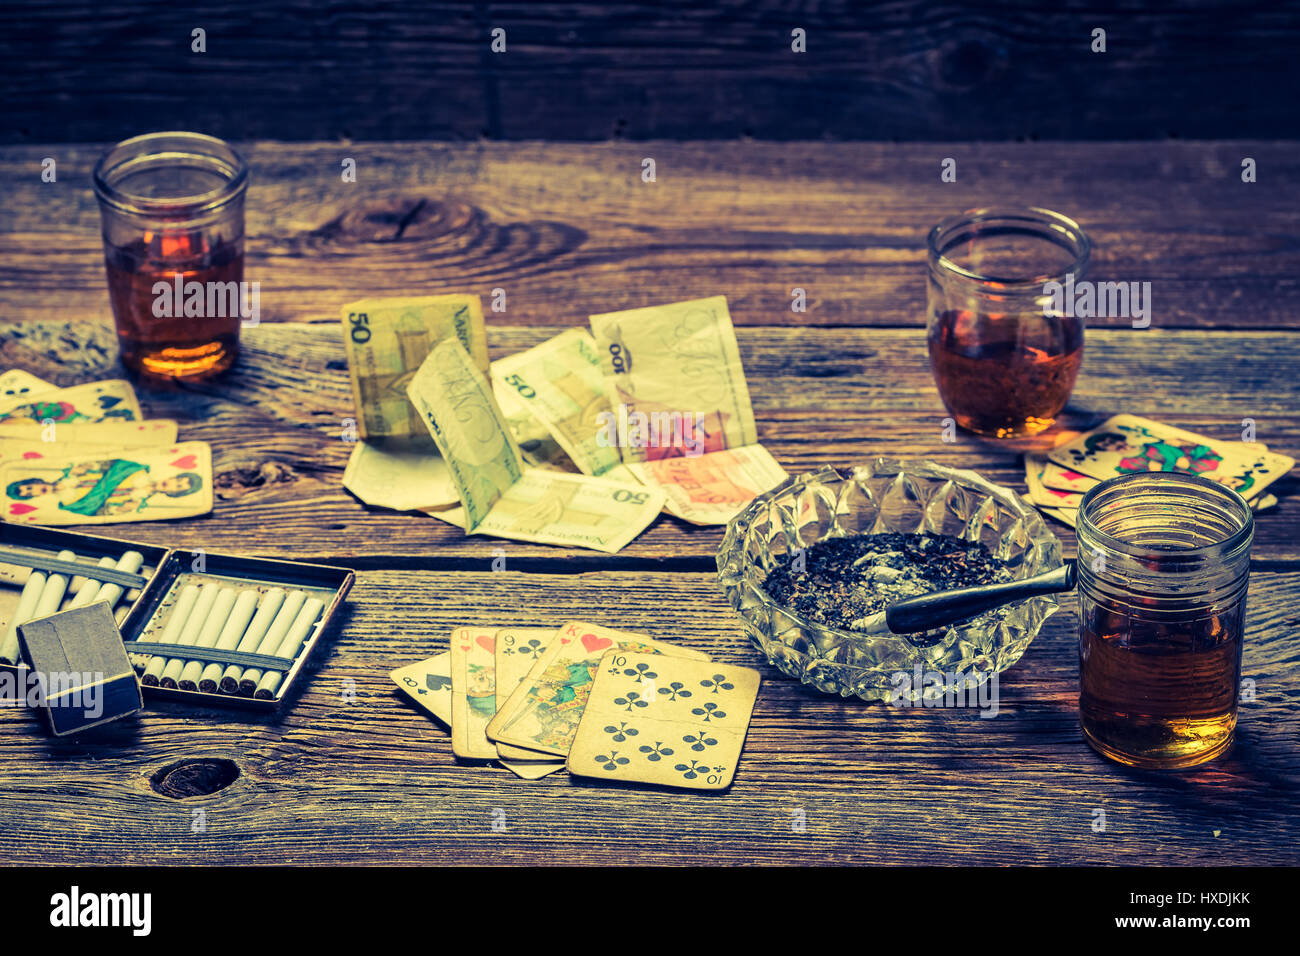 Old Table Illegal Poker Vodka High Resolution Stock Photography And Images Alamy